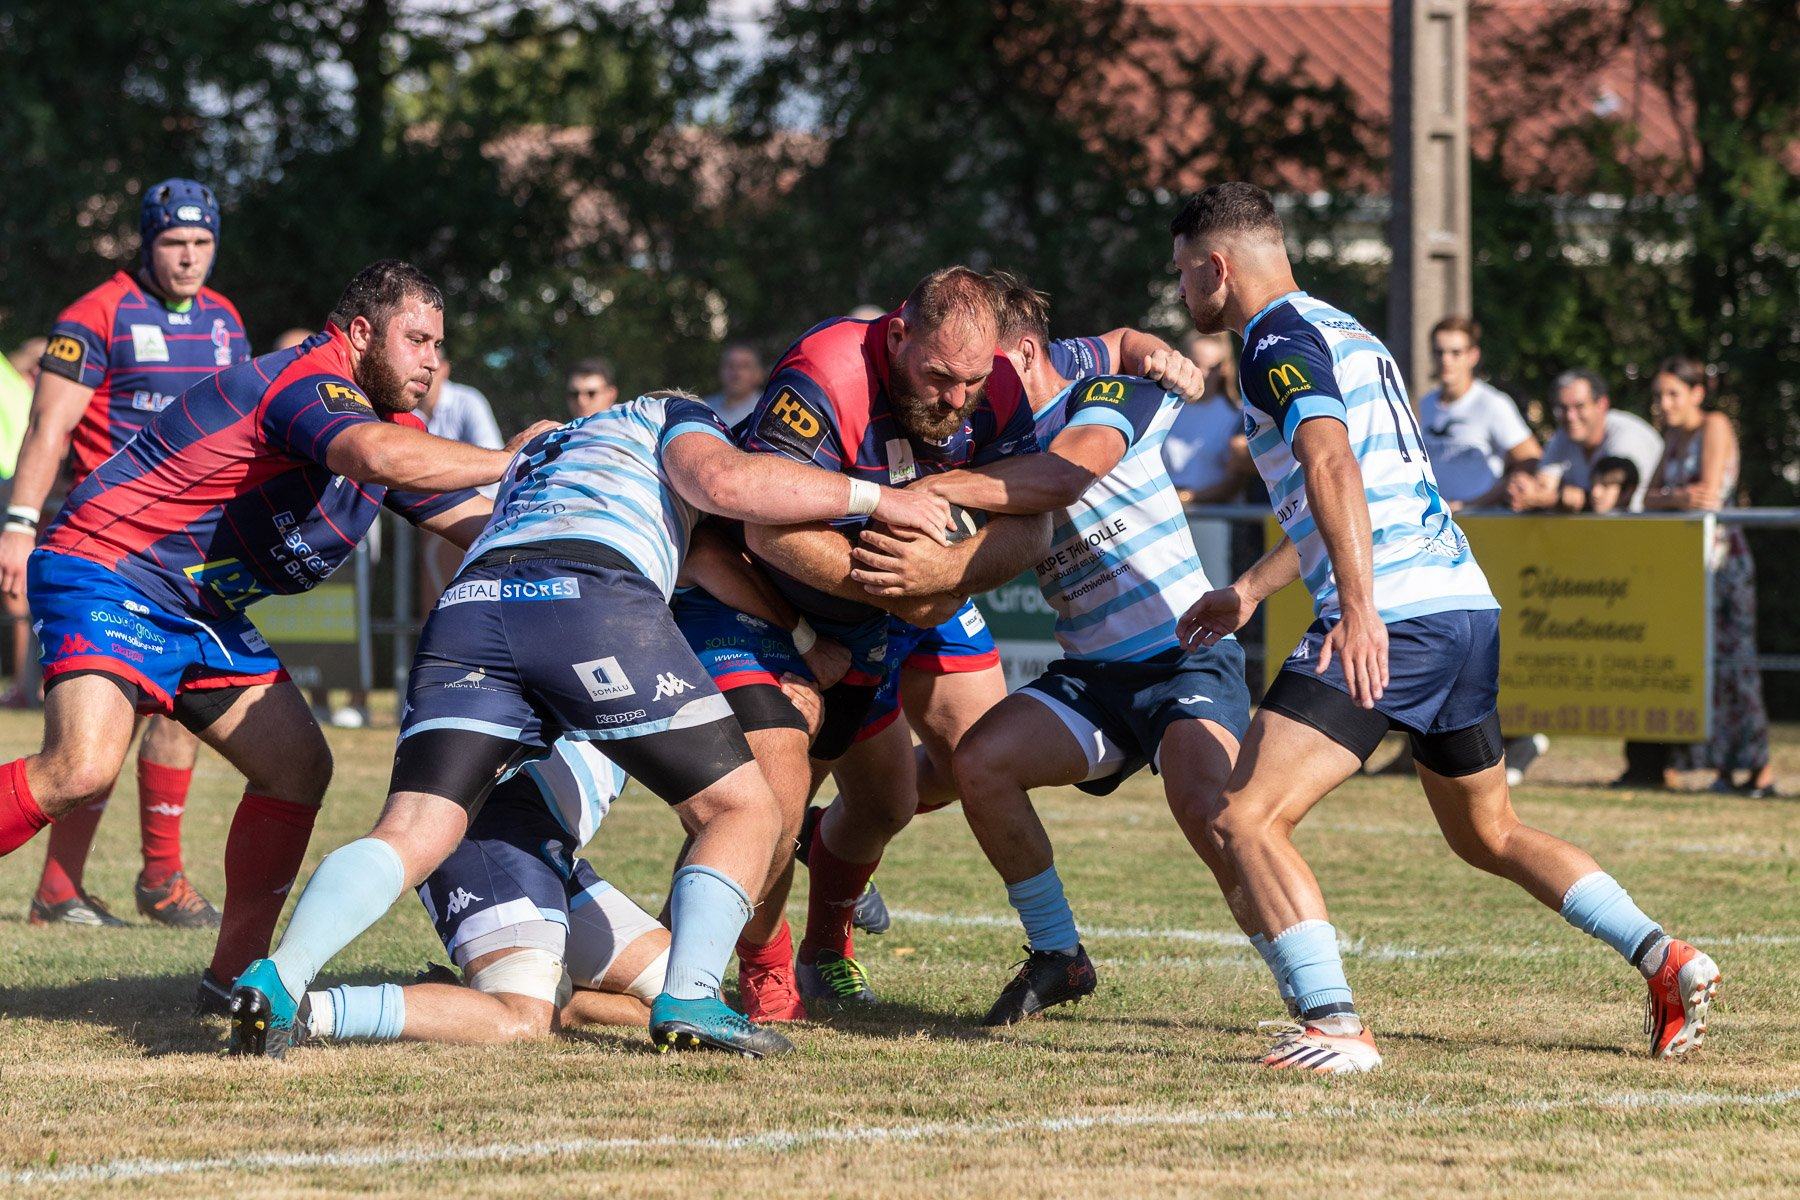 RUGBY (Federal 2, pleasant): Villefranche too potent for Le Creusot